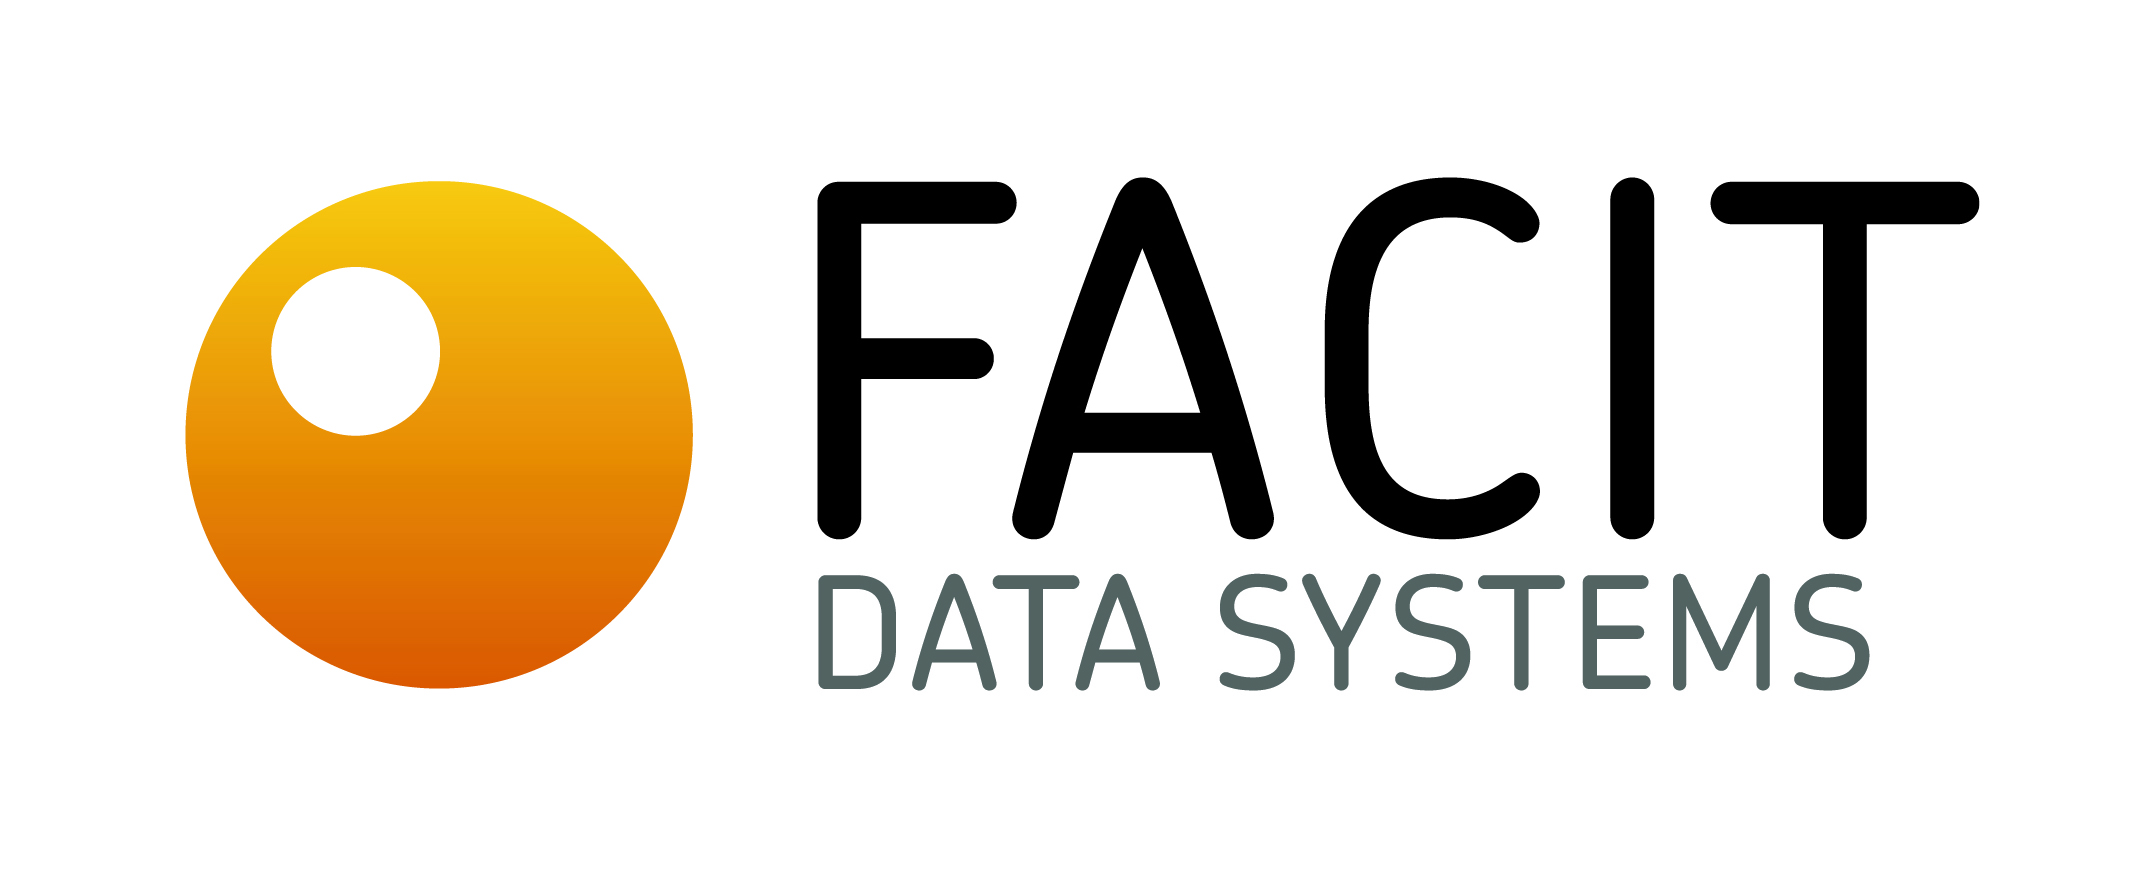 Facit Data Systems